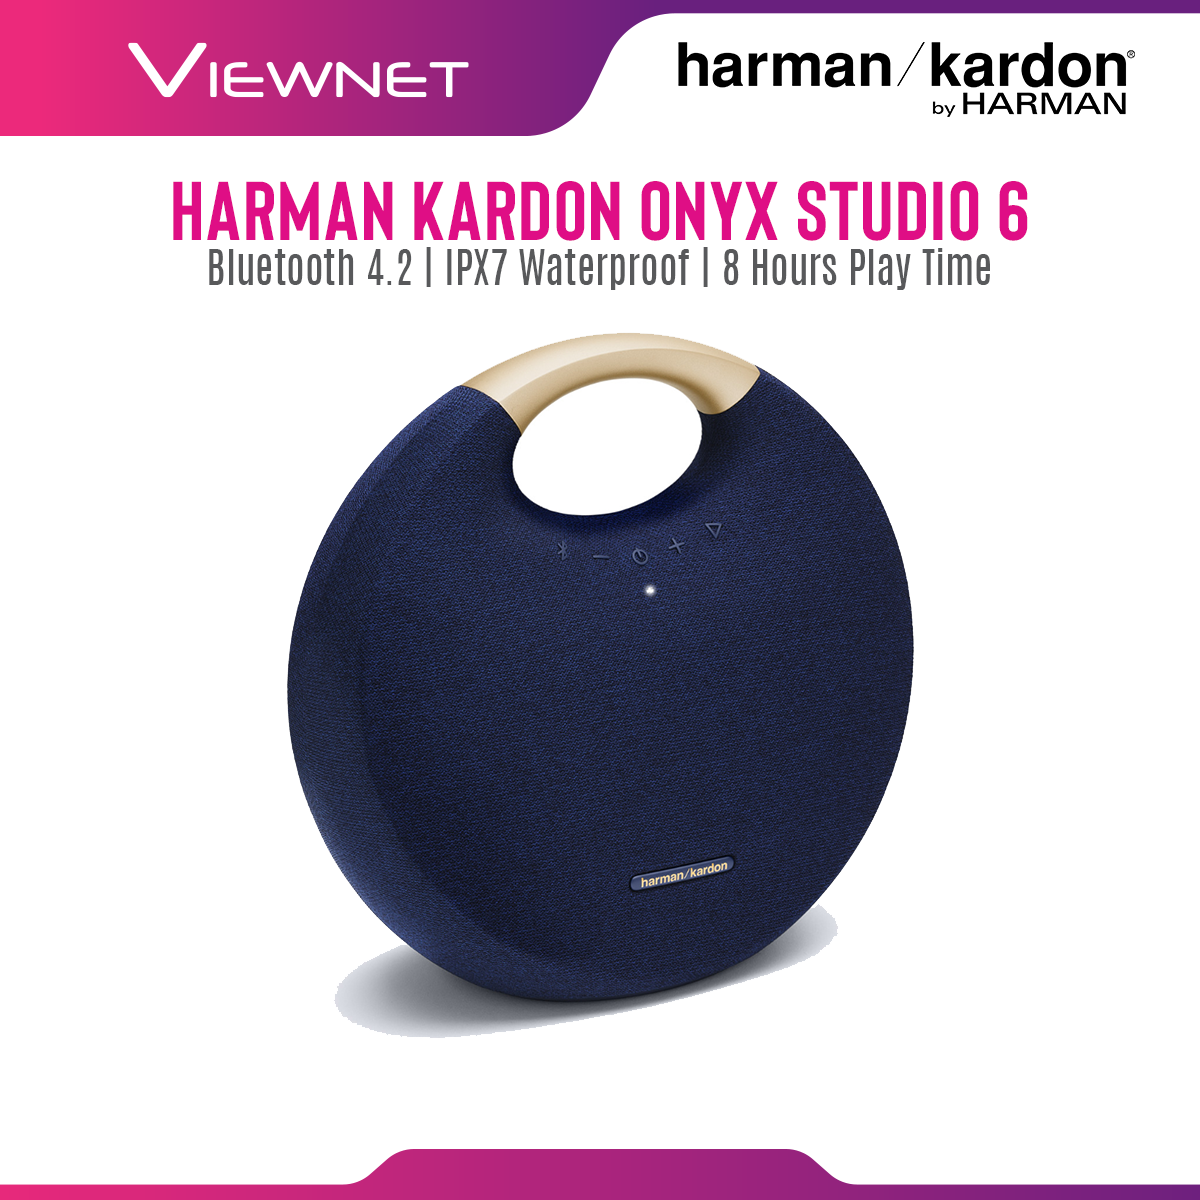 Harman Kardon Onyx Studio 6 Portable Wireless Bluetooth Speaker